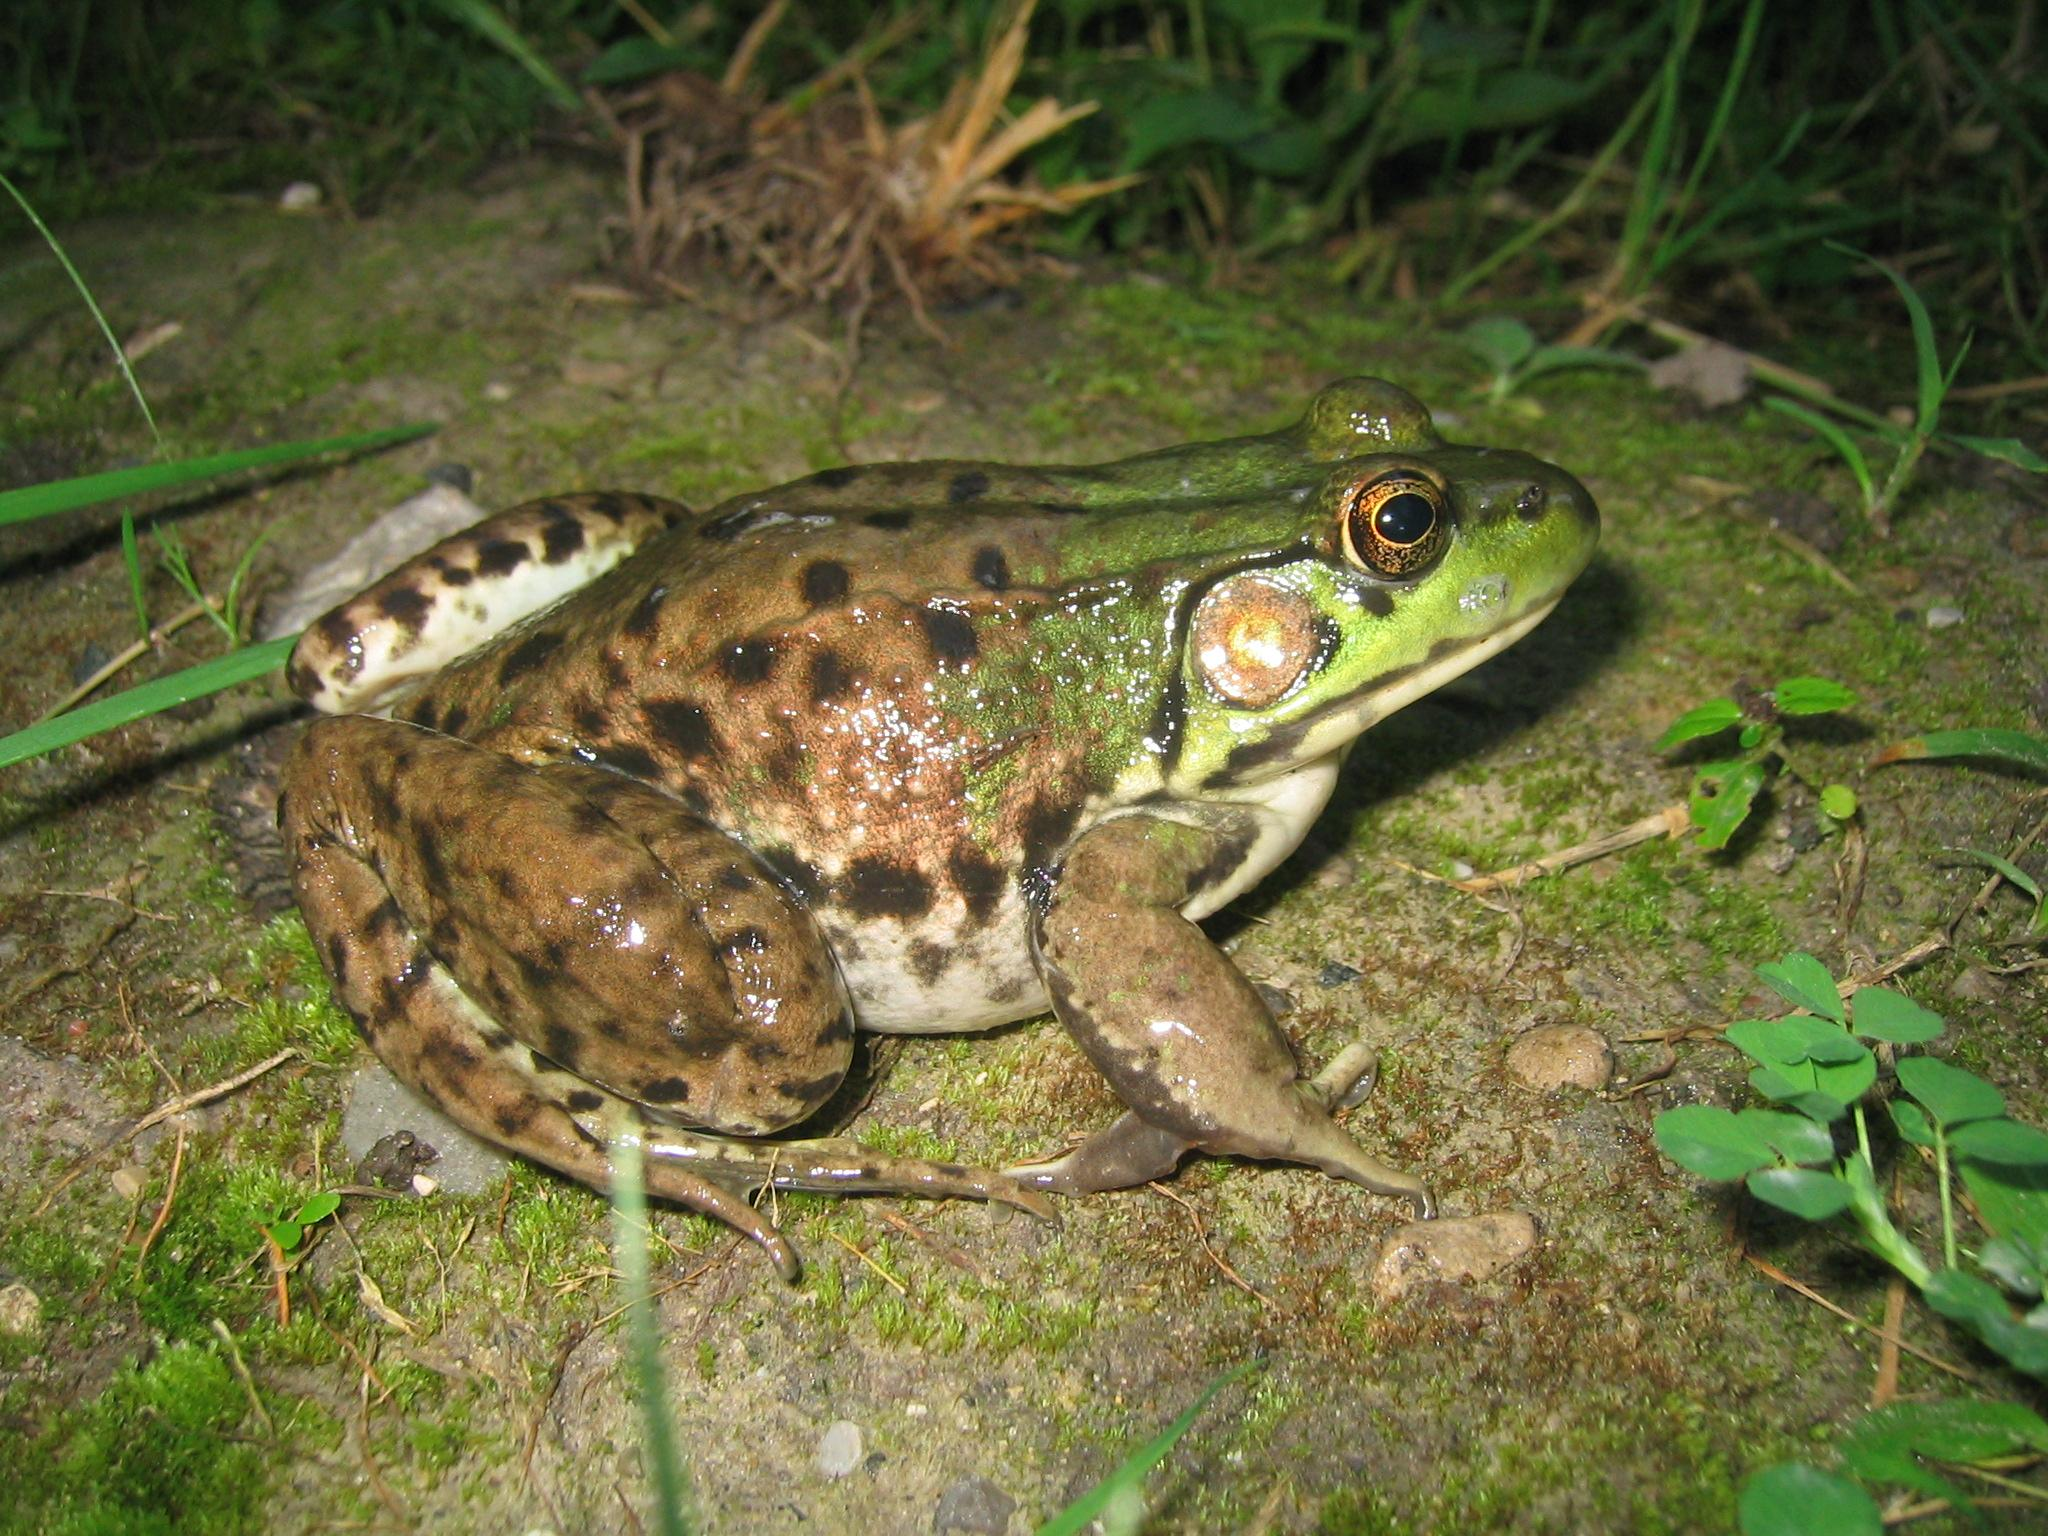 a adult frog